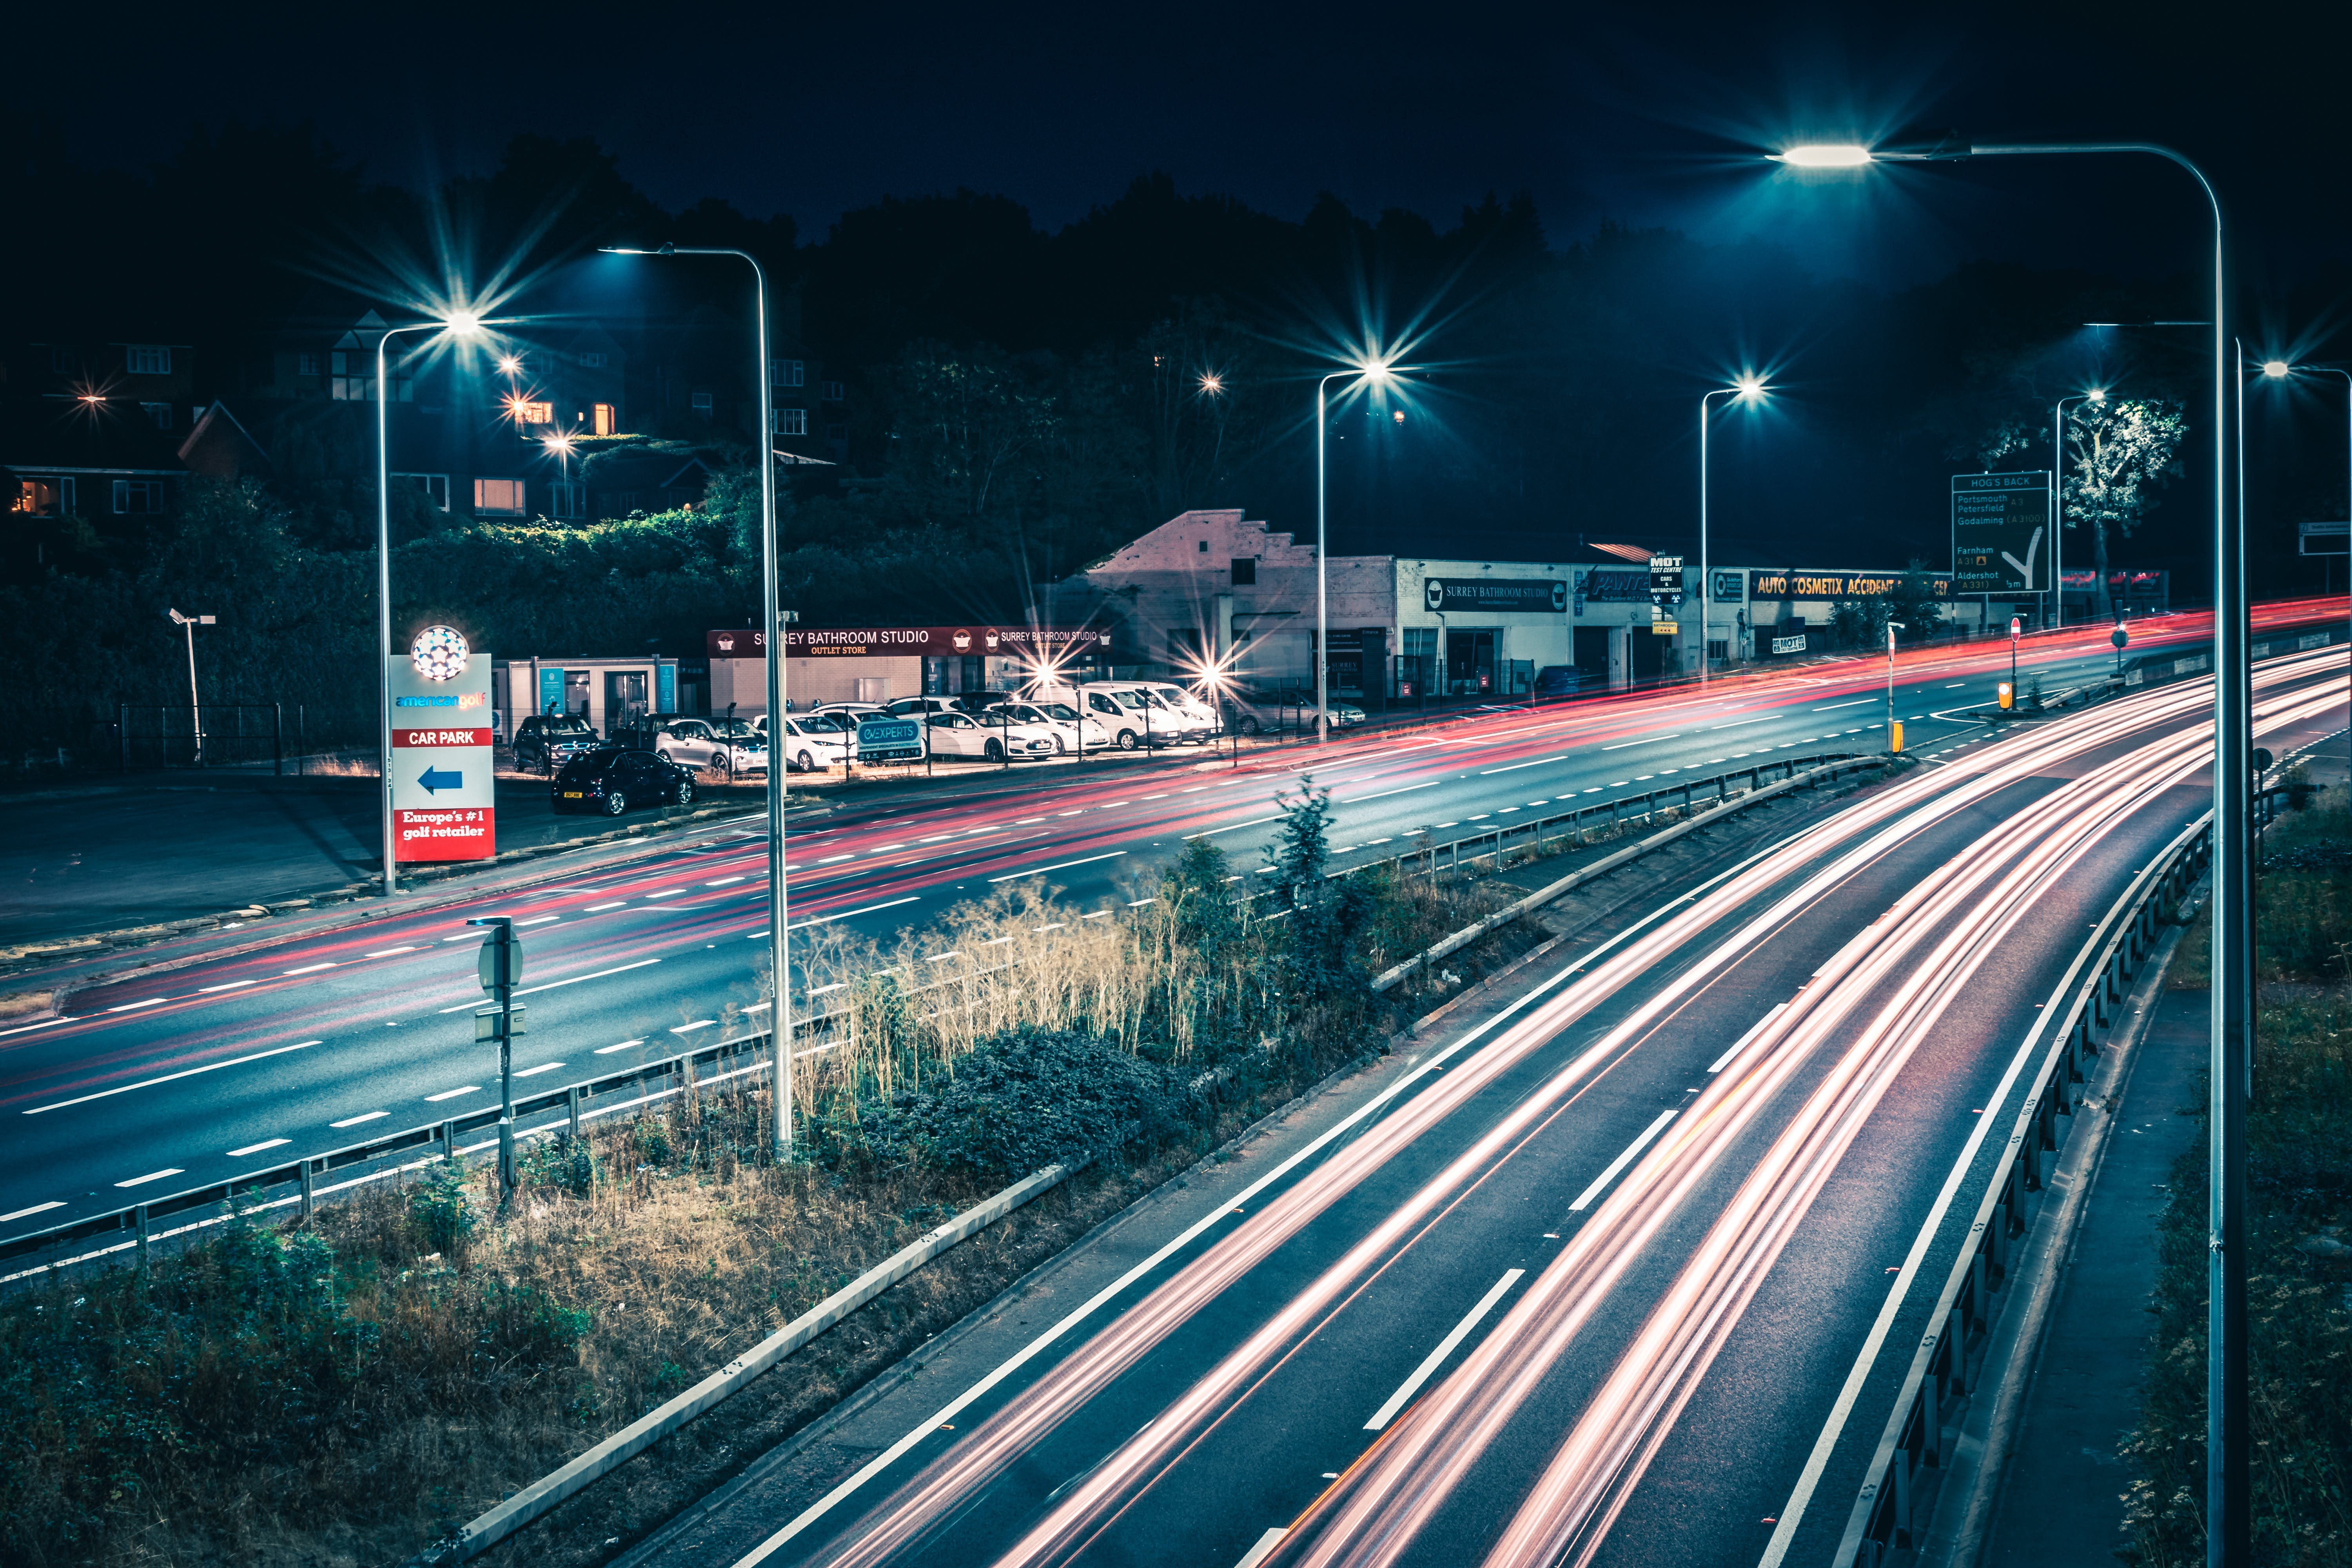 Time Lapse Photo Of Vehicles At Night Time